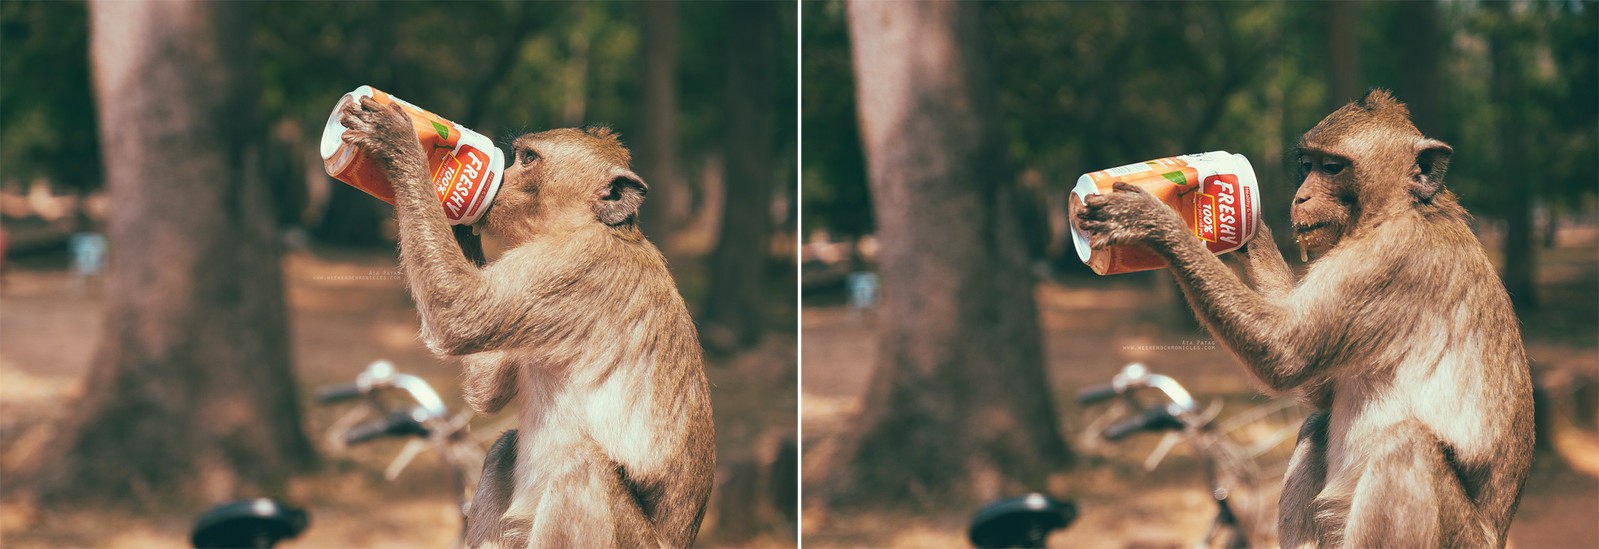 Wild macaques are so used to living with humans that this scene is a total norm in Siem Reap